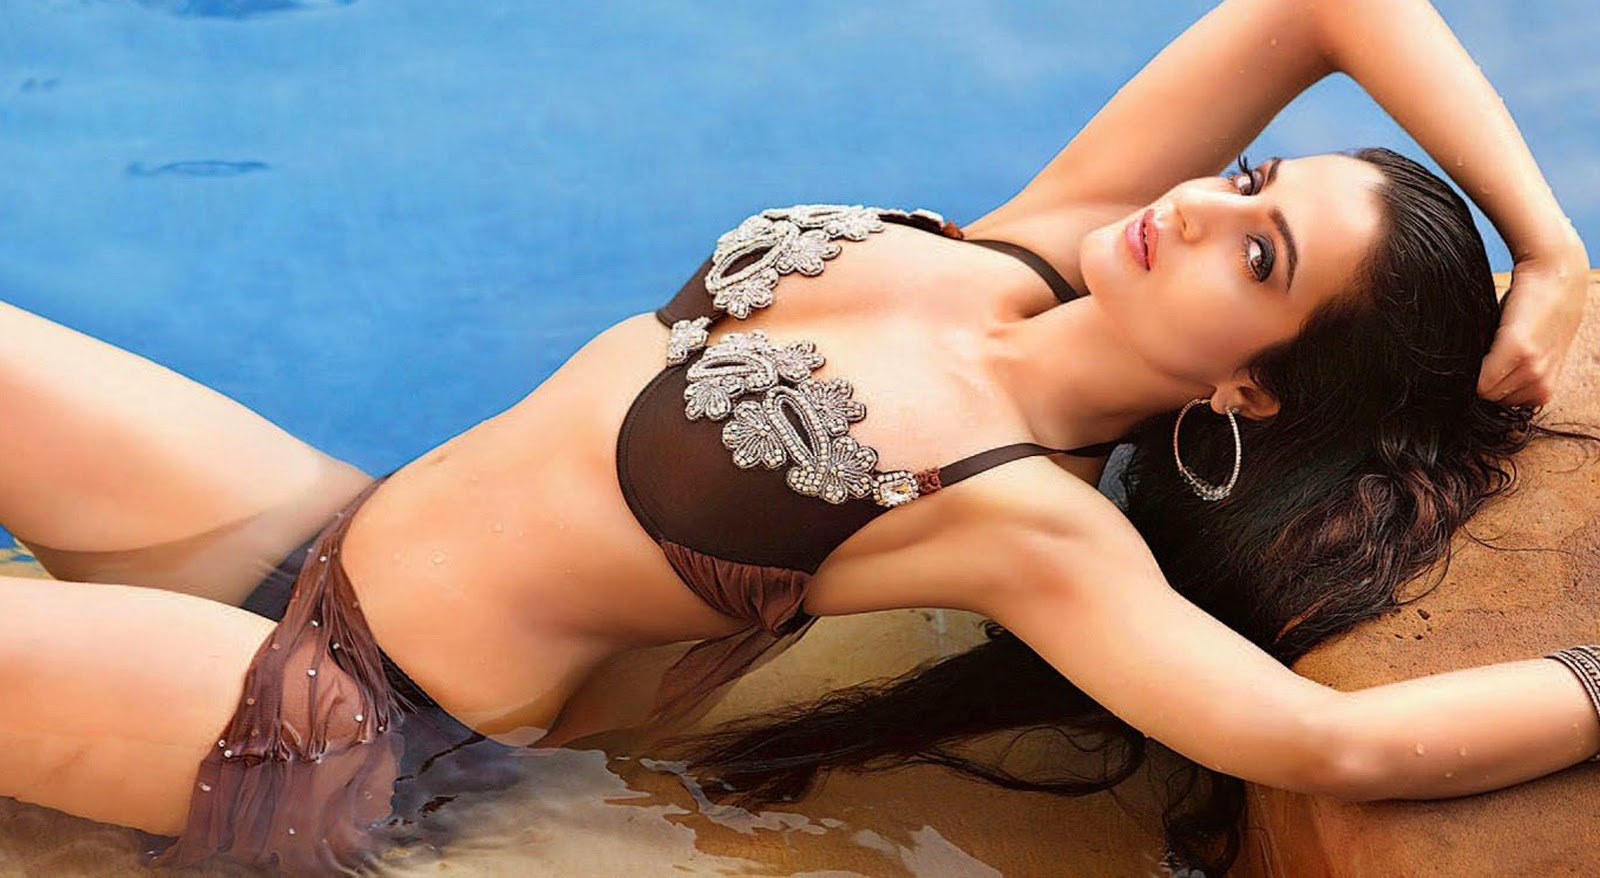 katrina kaif hot sexy bikini photo hd wallpapers images pictures